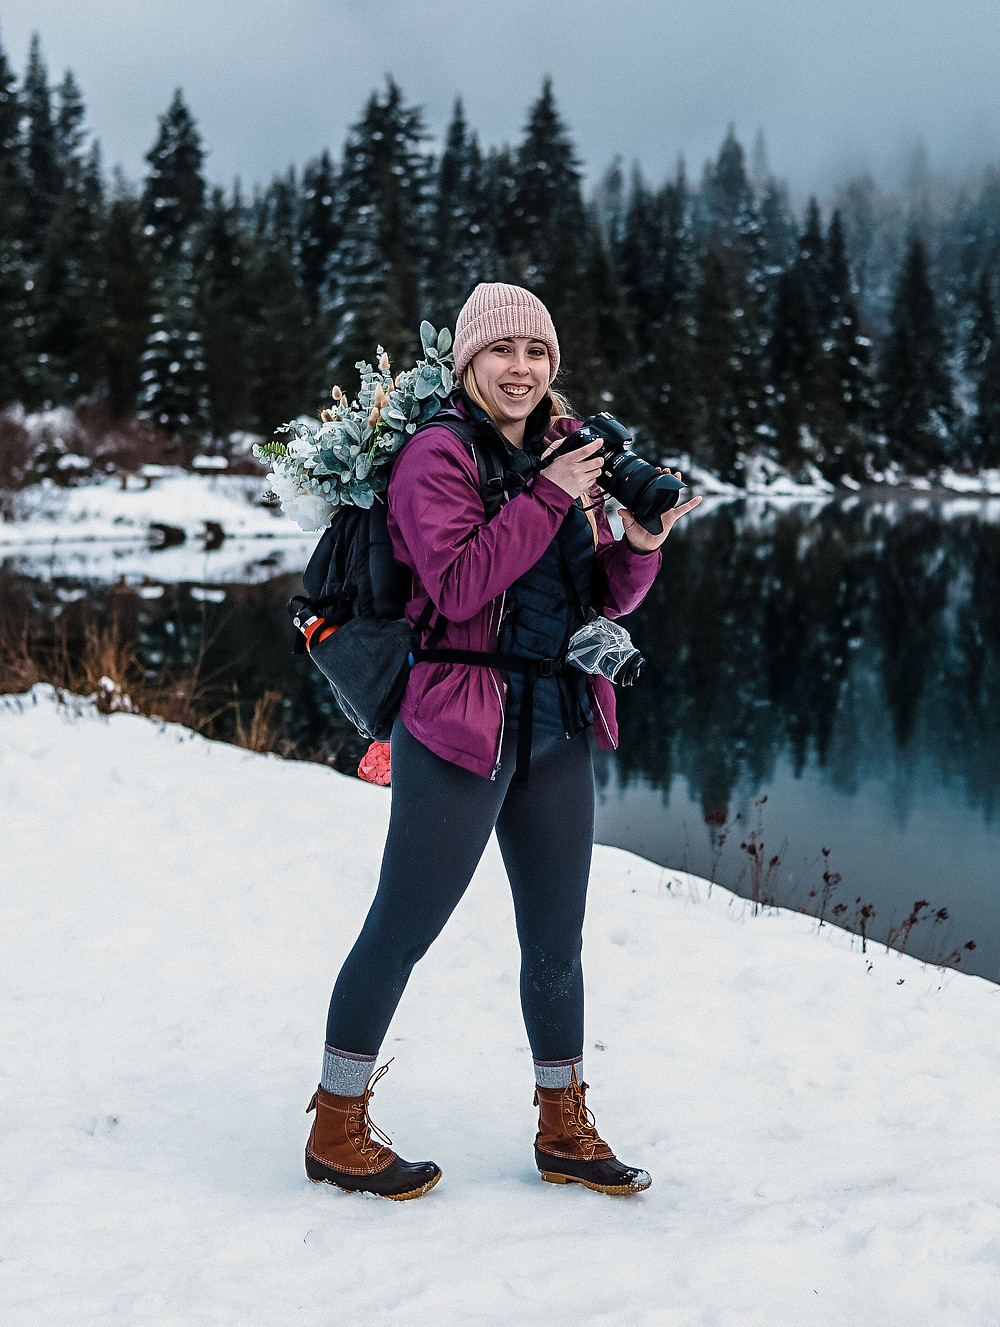 An adventure elopement photographer with a bridal bouquet in their backpack smiling while photographing an elopement in Washington